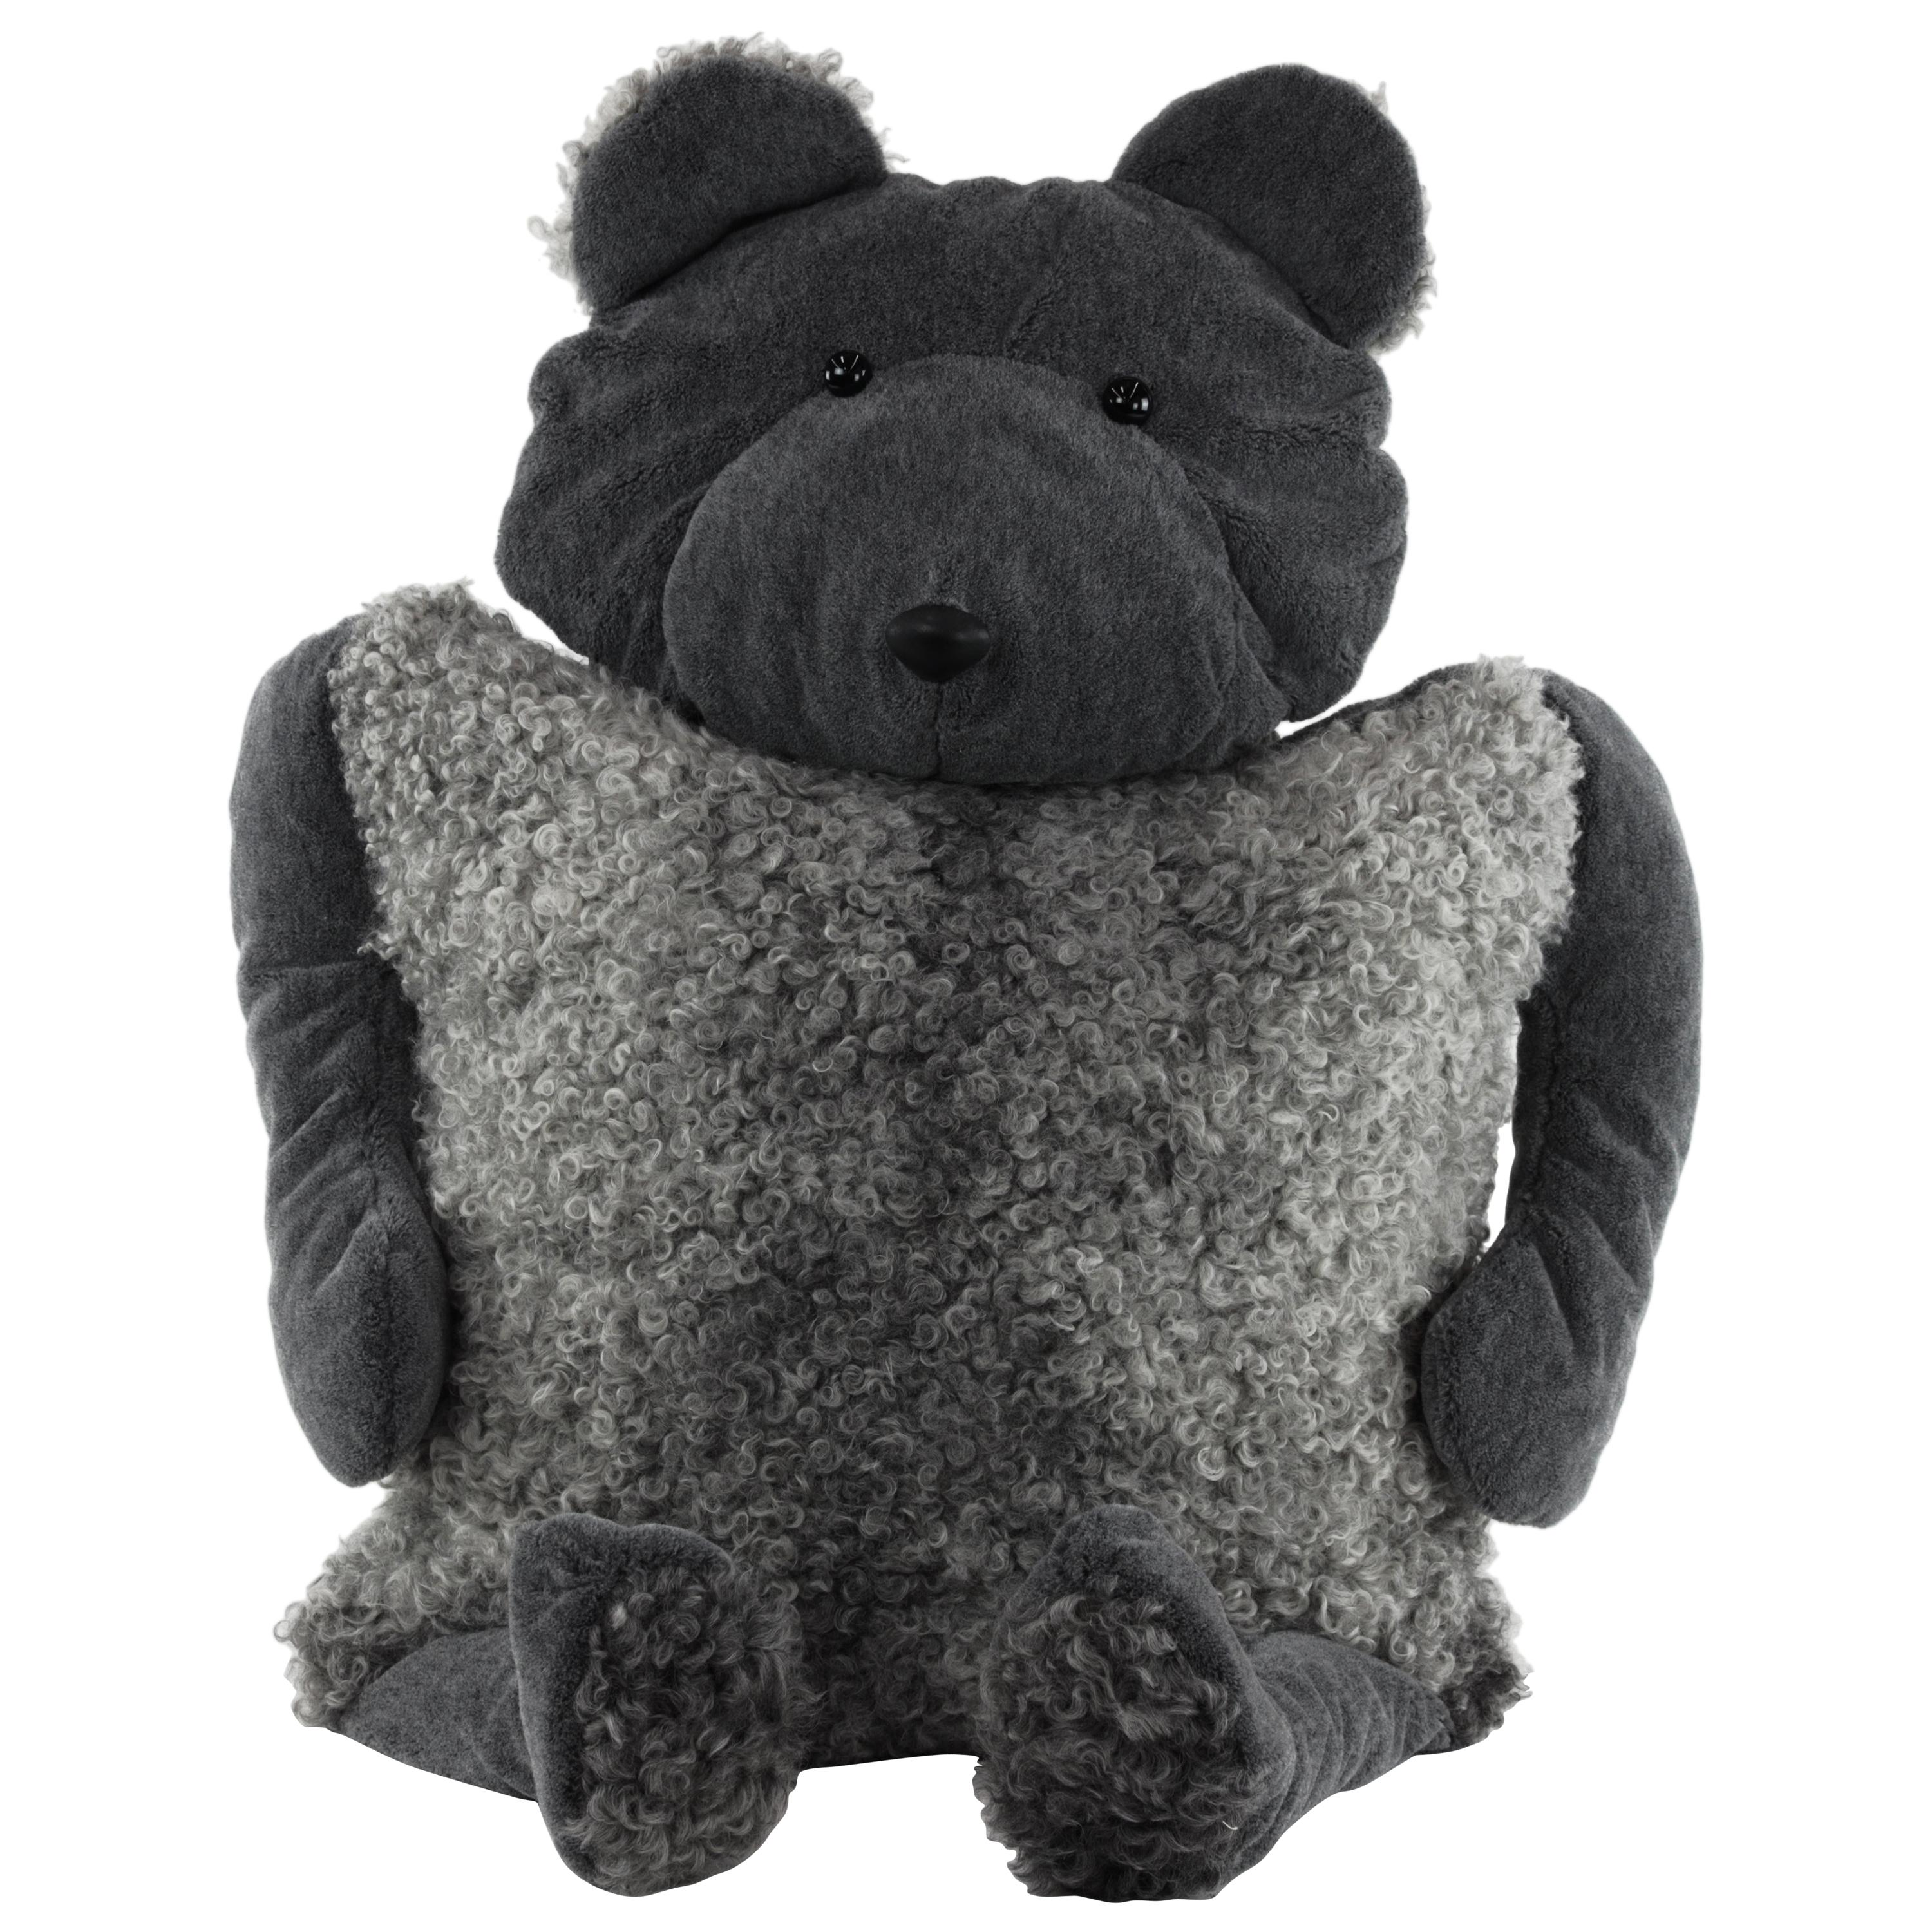 Bear Buddy Throw Pillow in Alpaca and Lambskin, 2020, by Christopher Kreiling